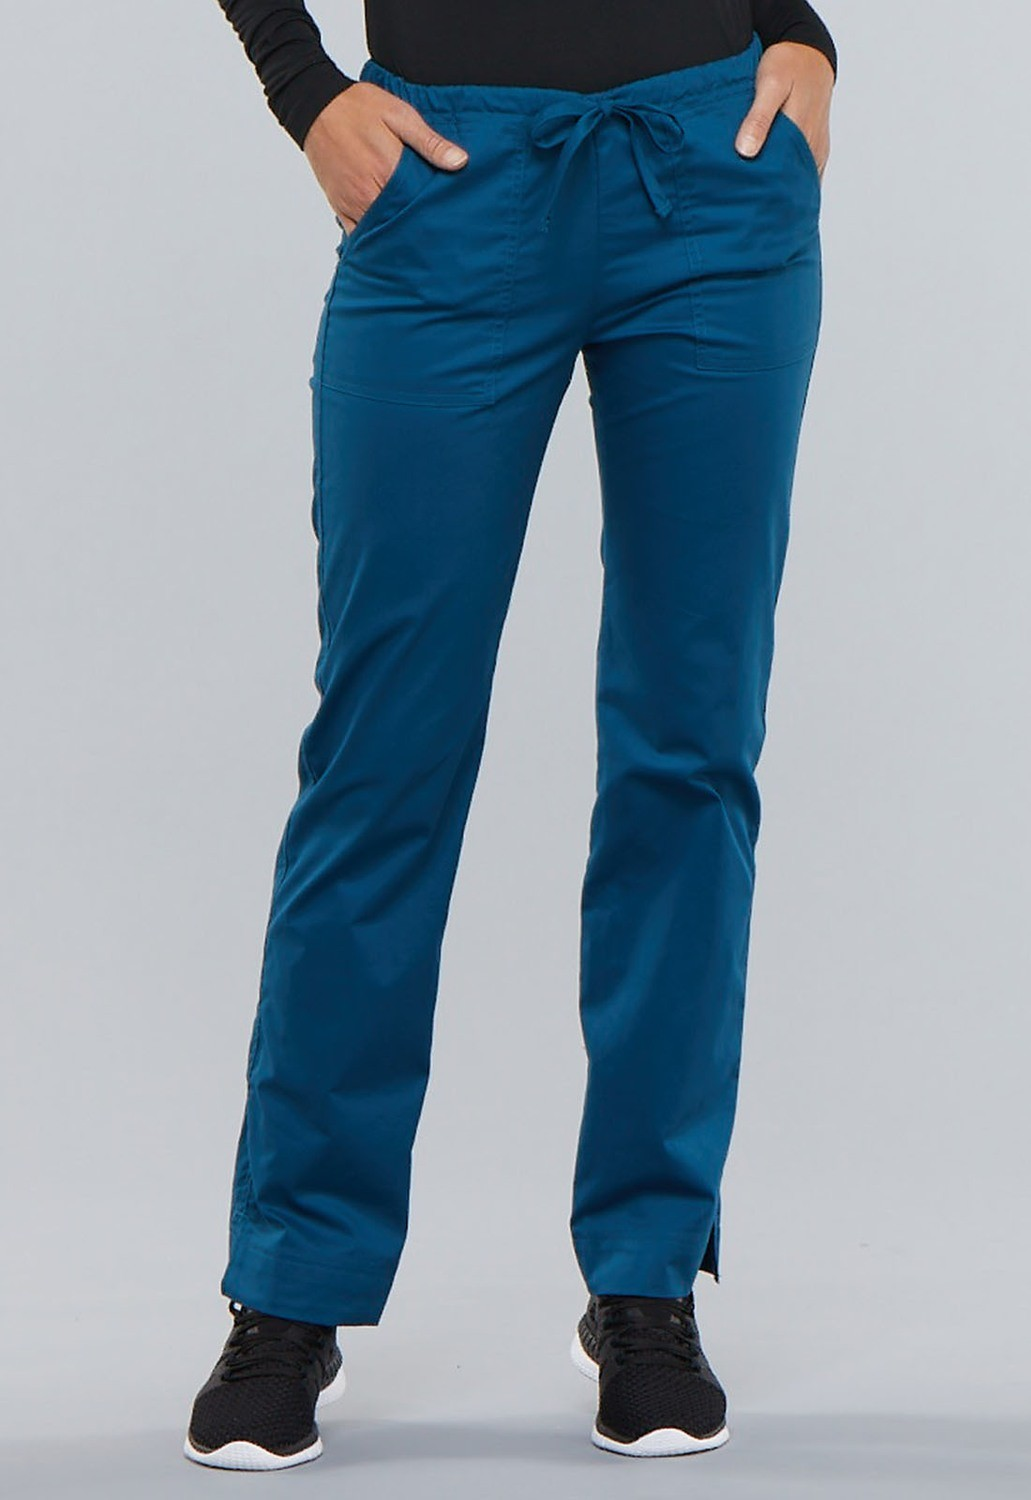 Pantalone CHEROKEE CORE STRETCH 4203 Colore Caribbean Blue